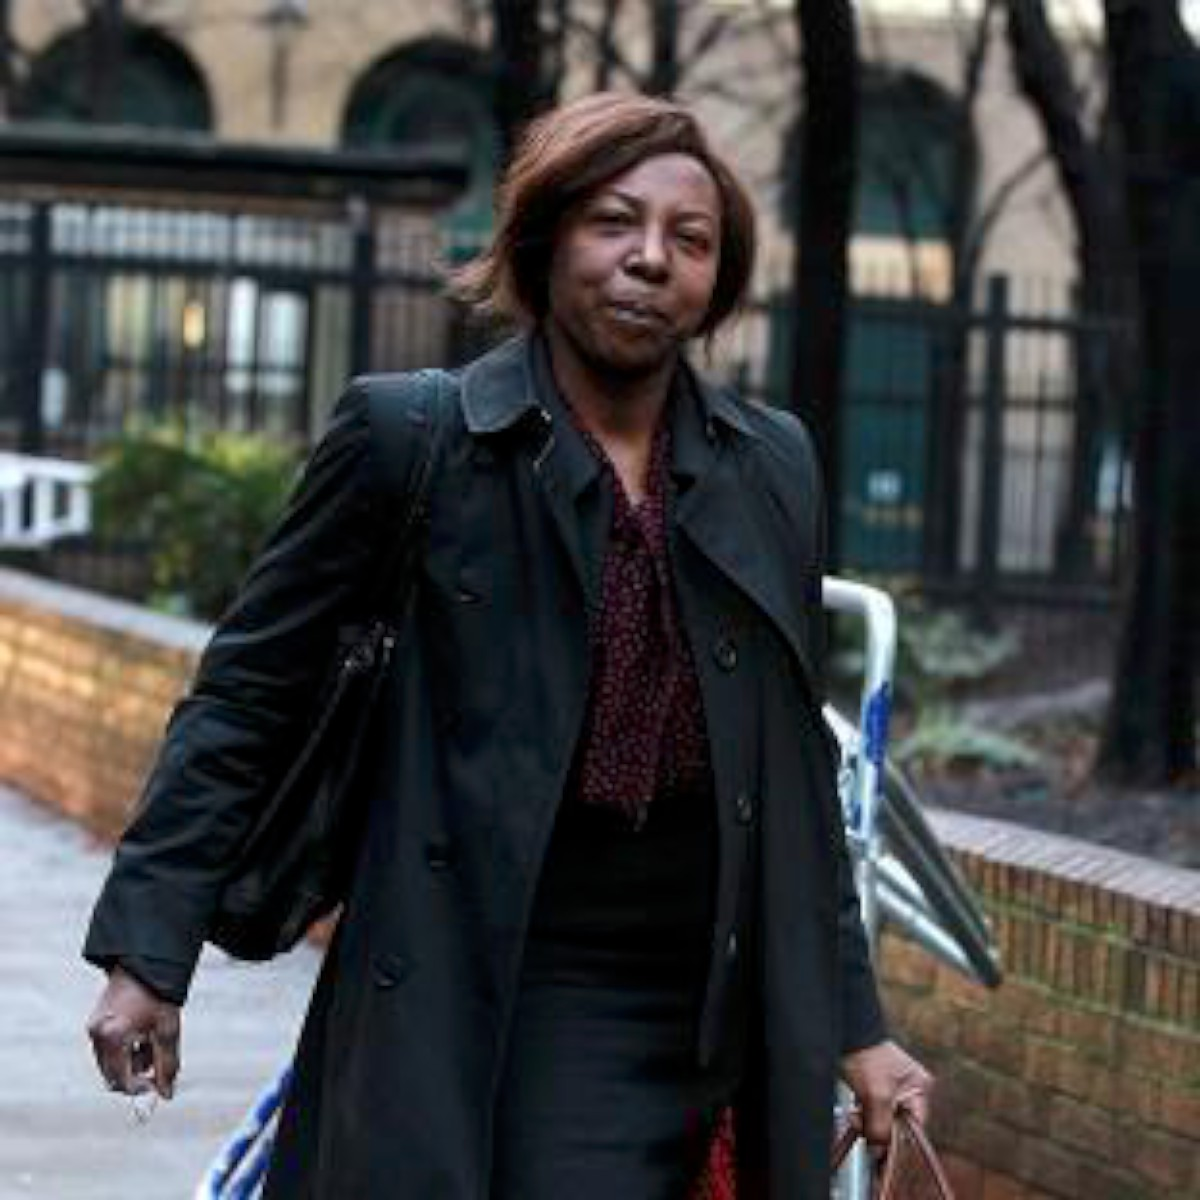 Constance Briscoe outside Southwark crown Court